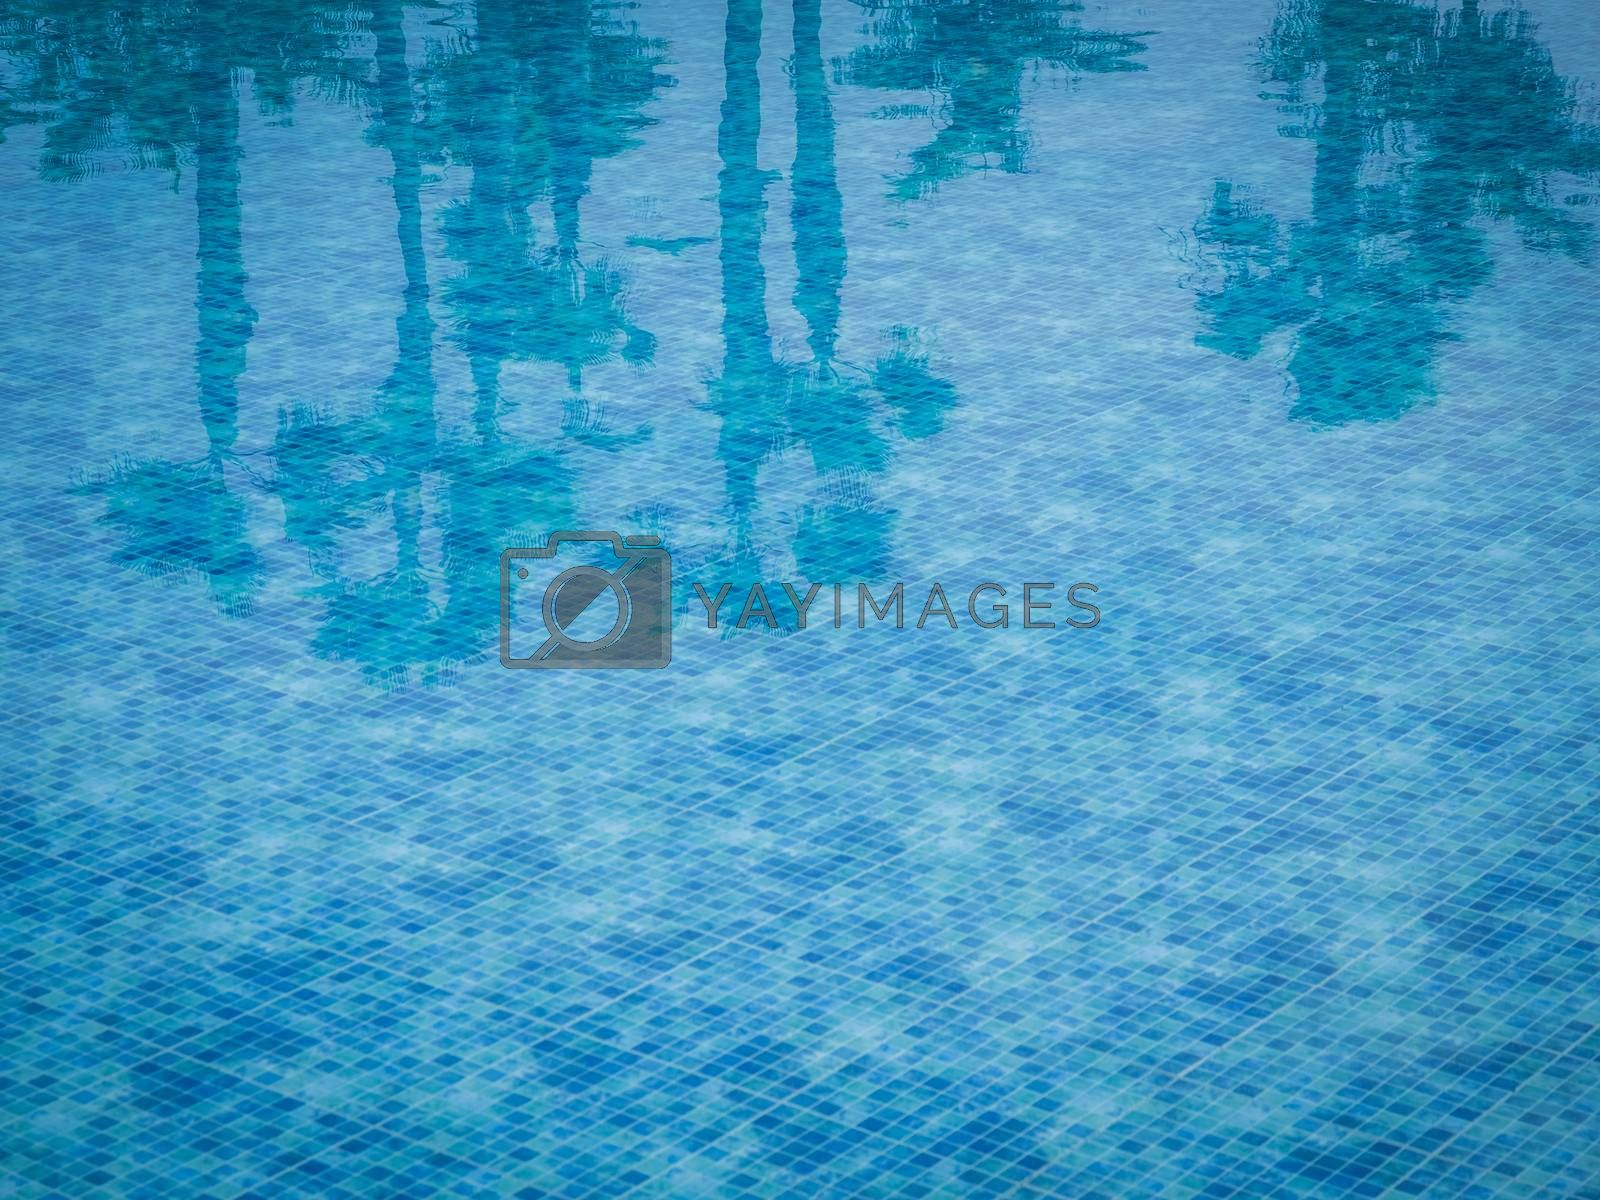 Reflection of few palmtrees in a water of a swimming pool with squared pattern floor tiles